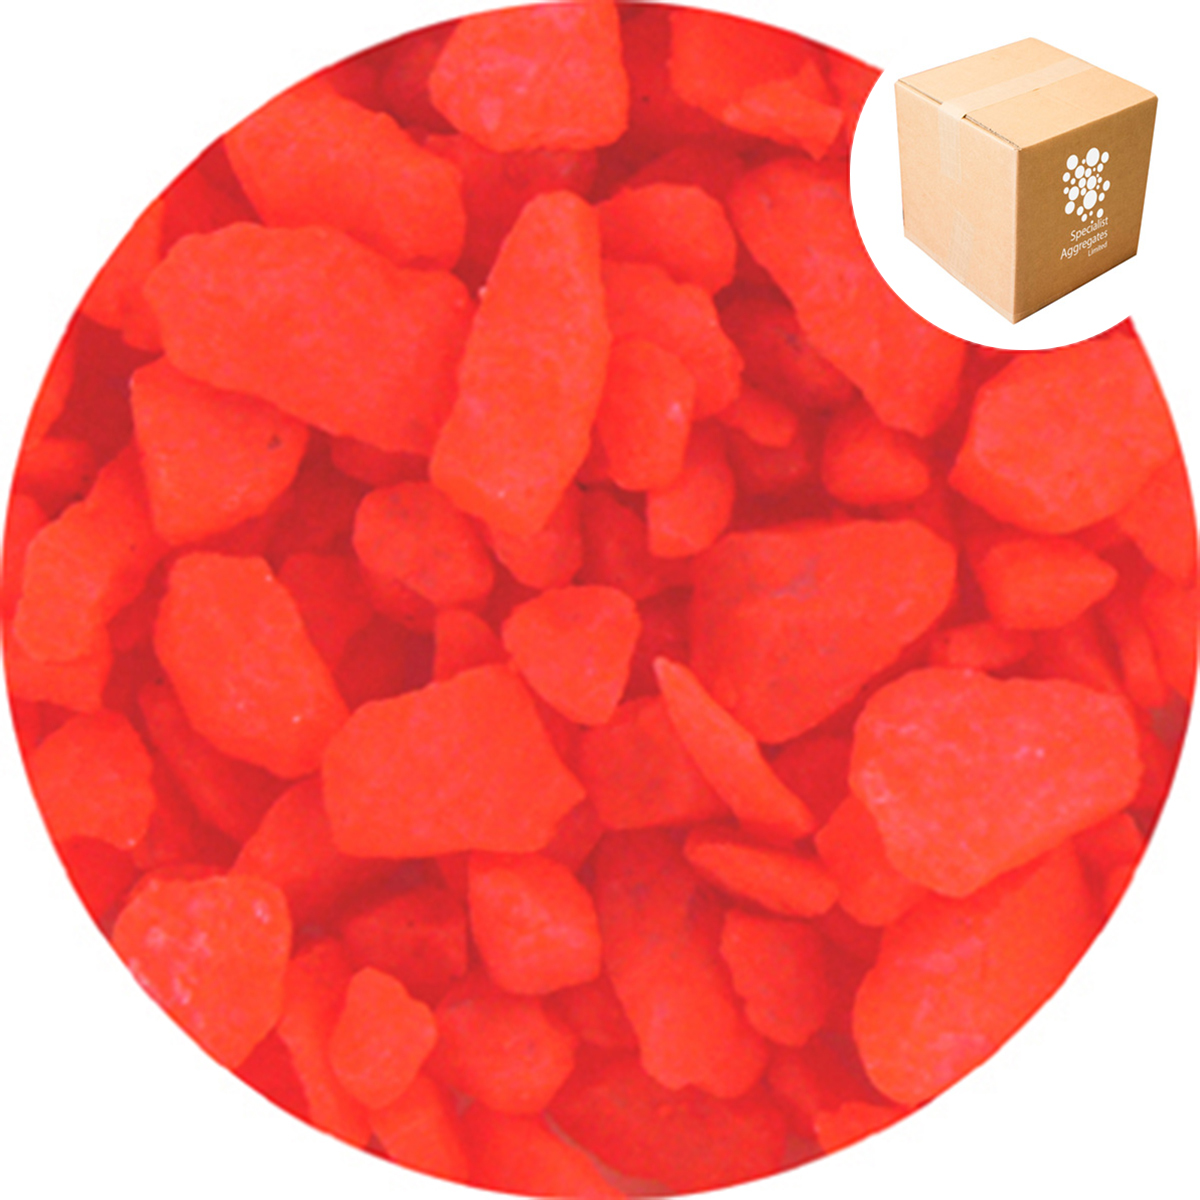 Aspen Crystal  - Day Glo - Bright Red